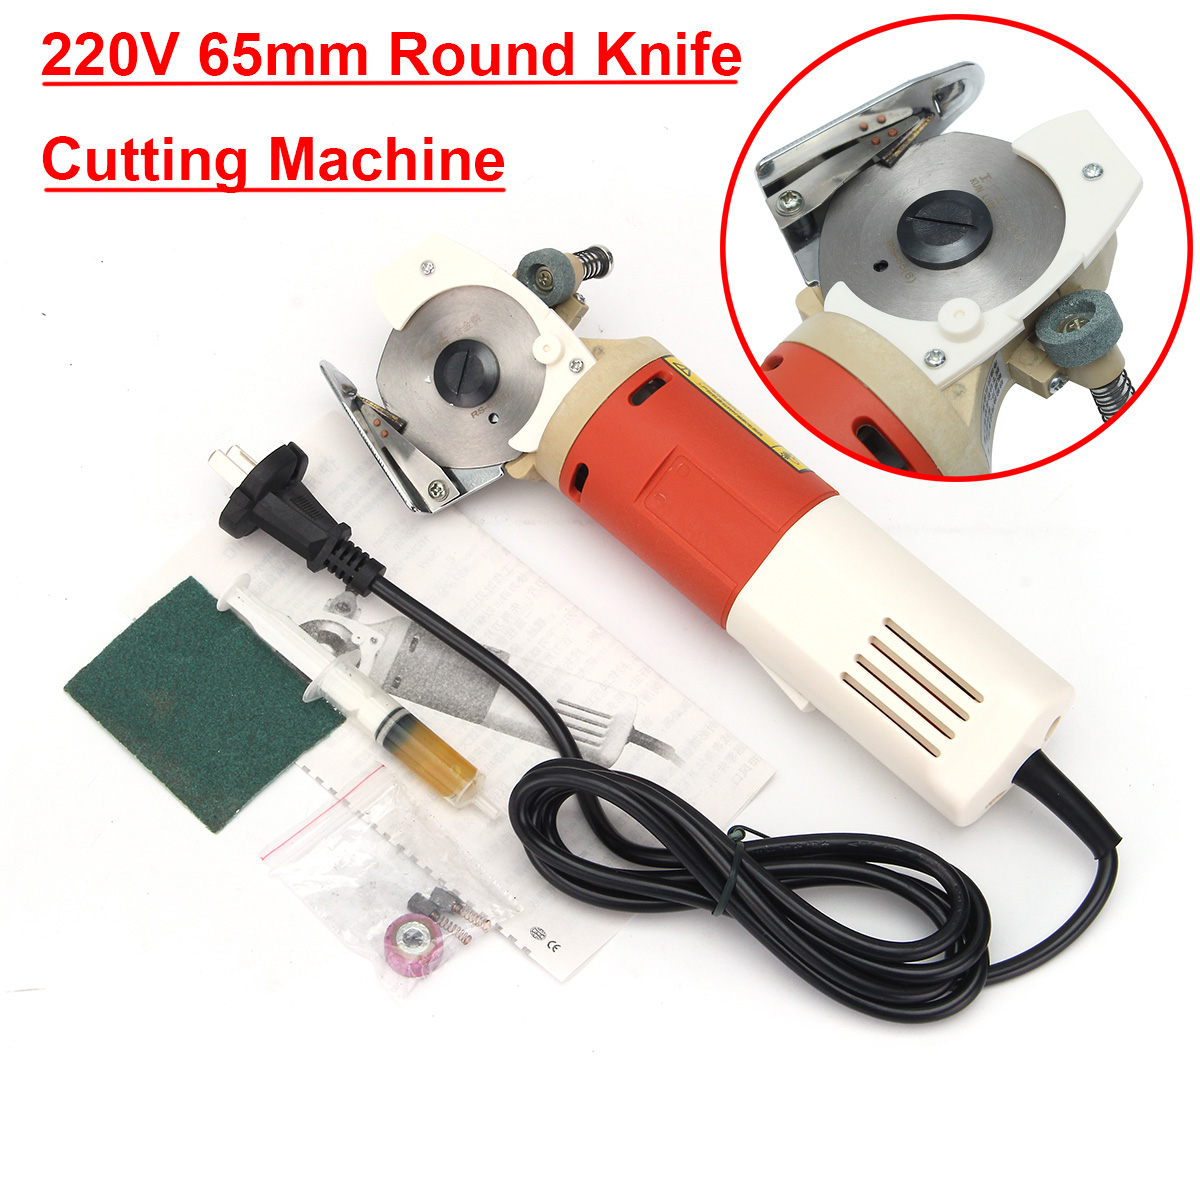 65mm Rotary Blade Electric Round Knife Cloth Cutter Fabric Cutting Machine 220V AC 150W